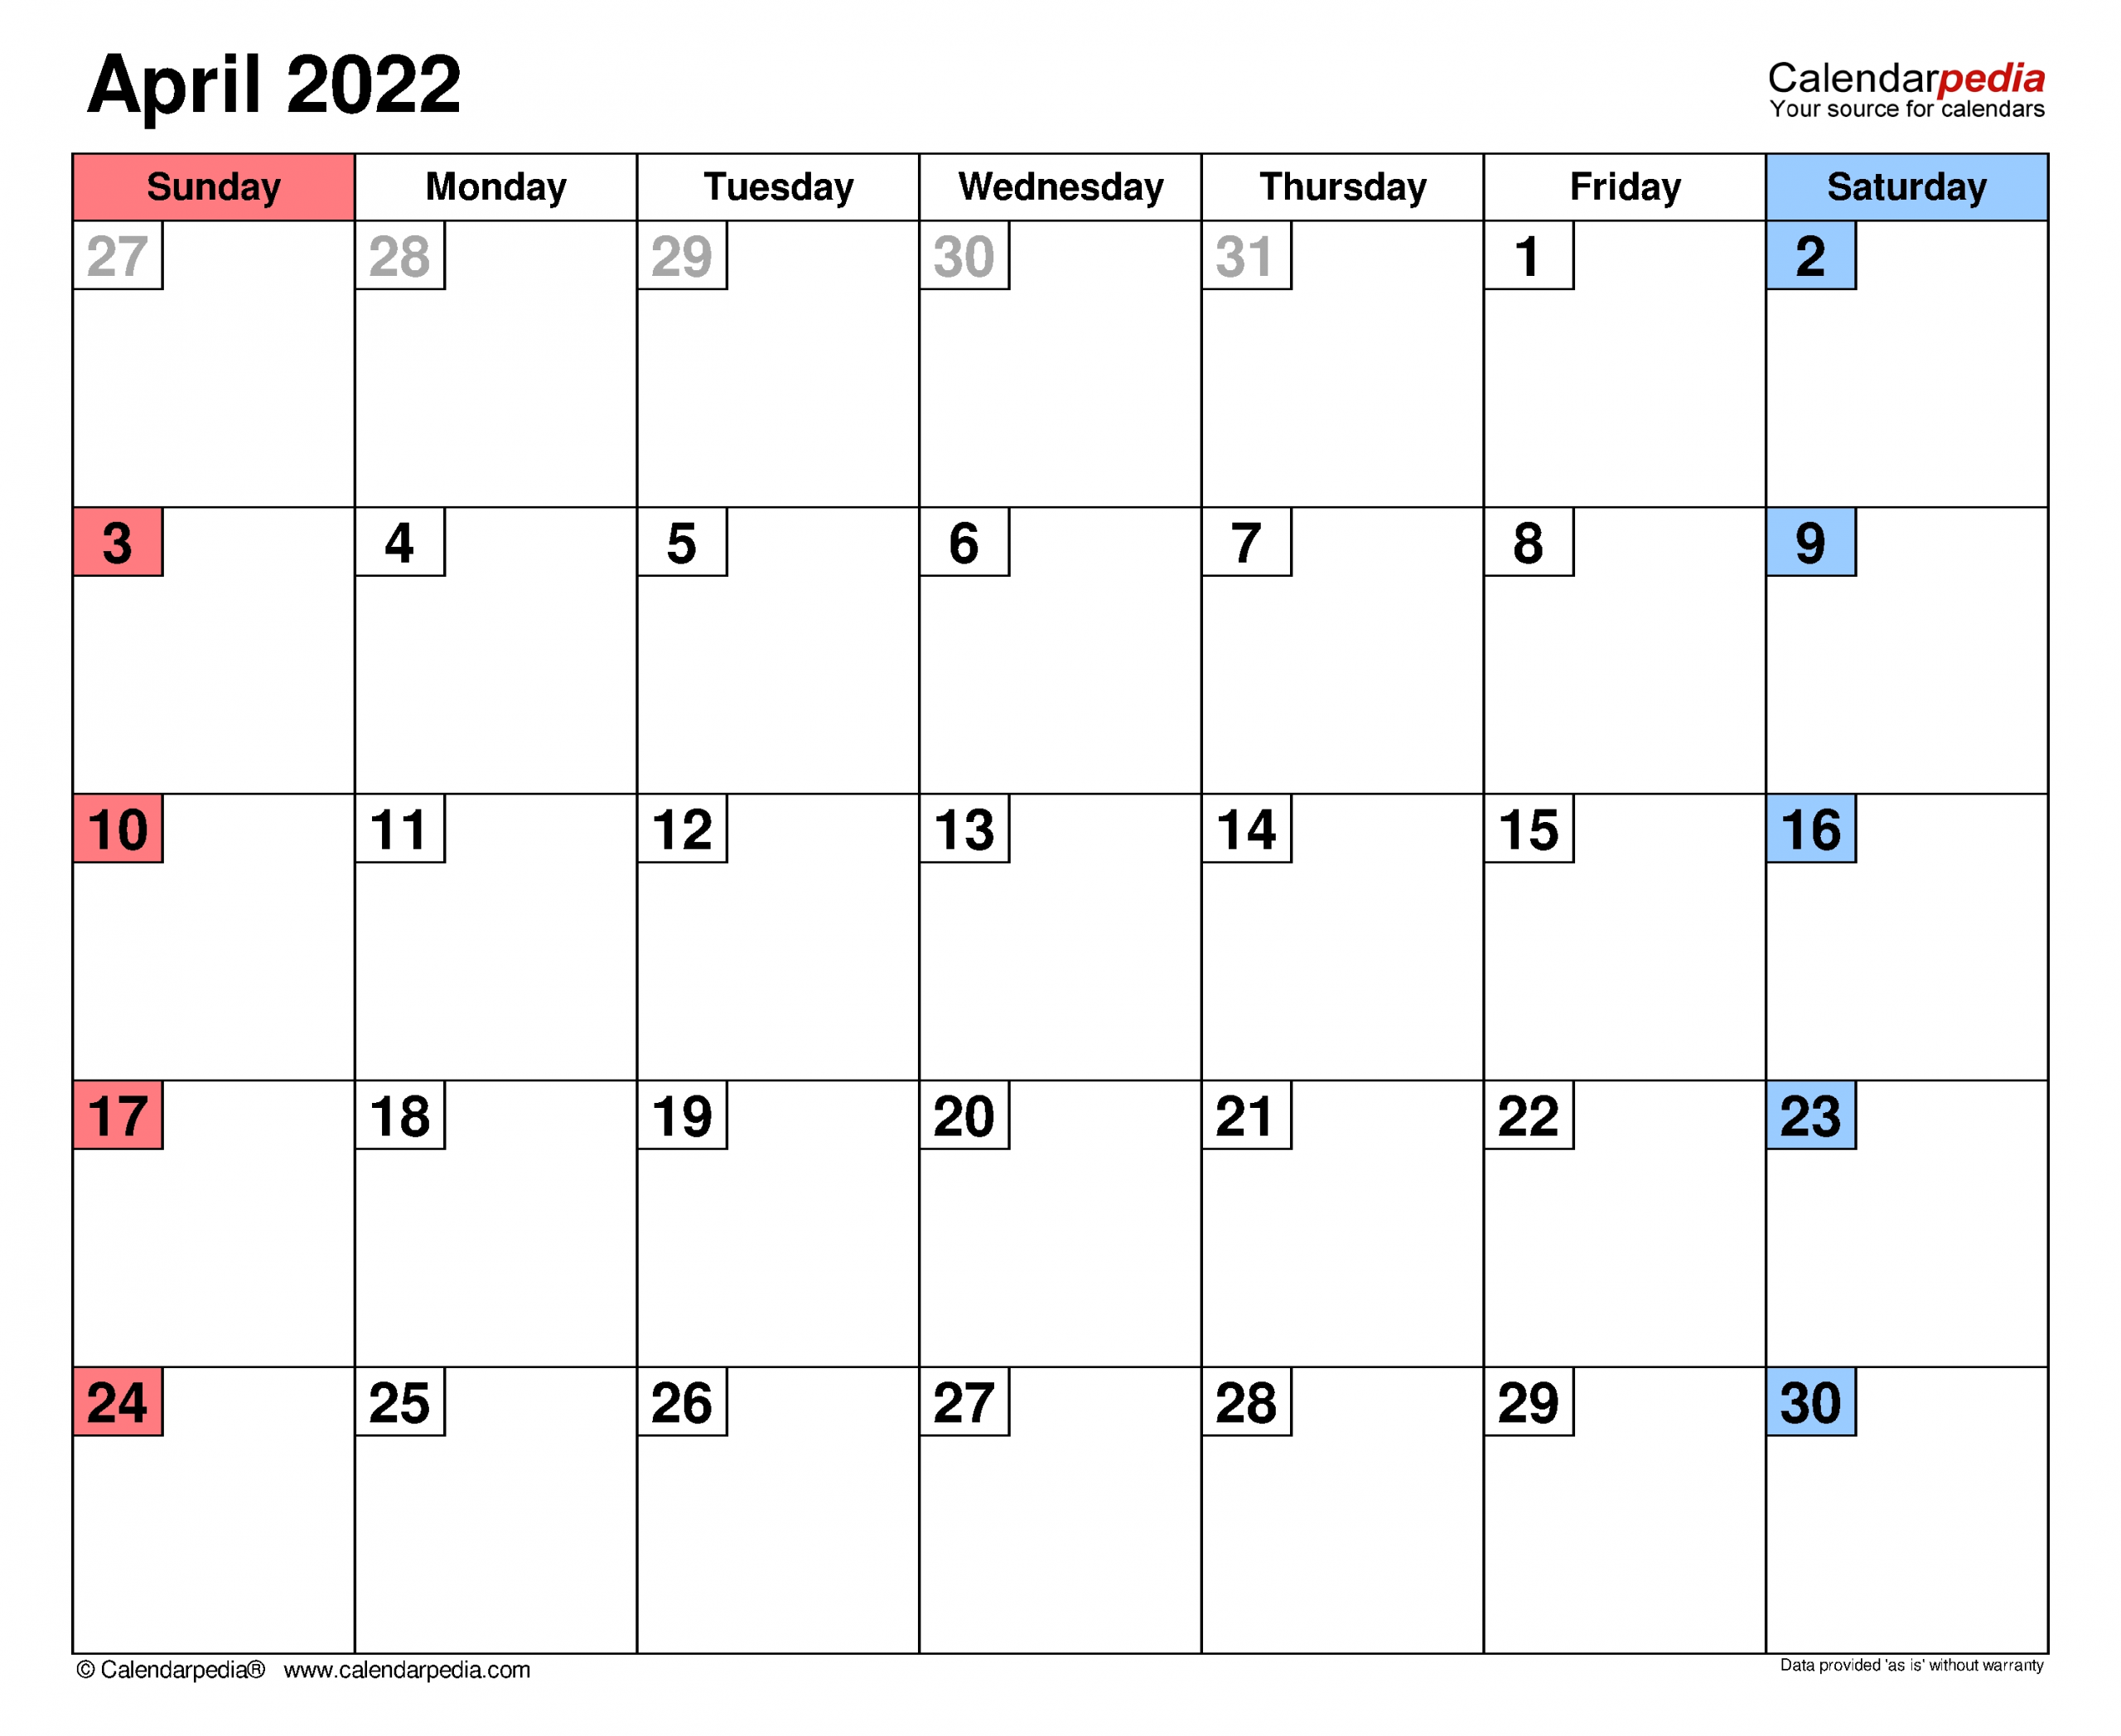 April 2022 Calendar | Templates For Word, Excel And Pdf